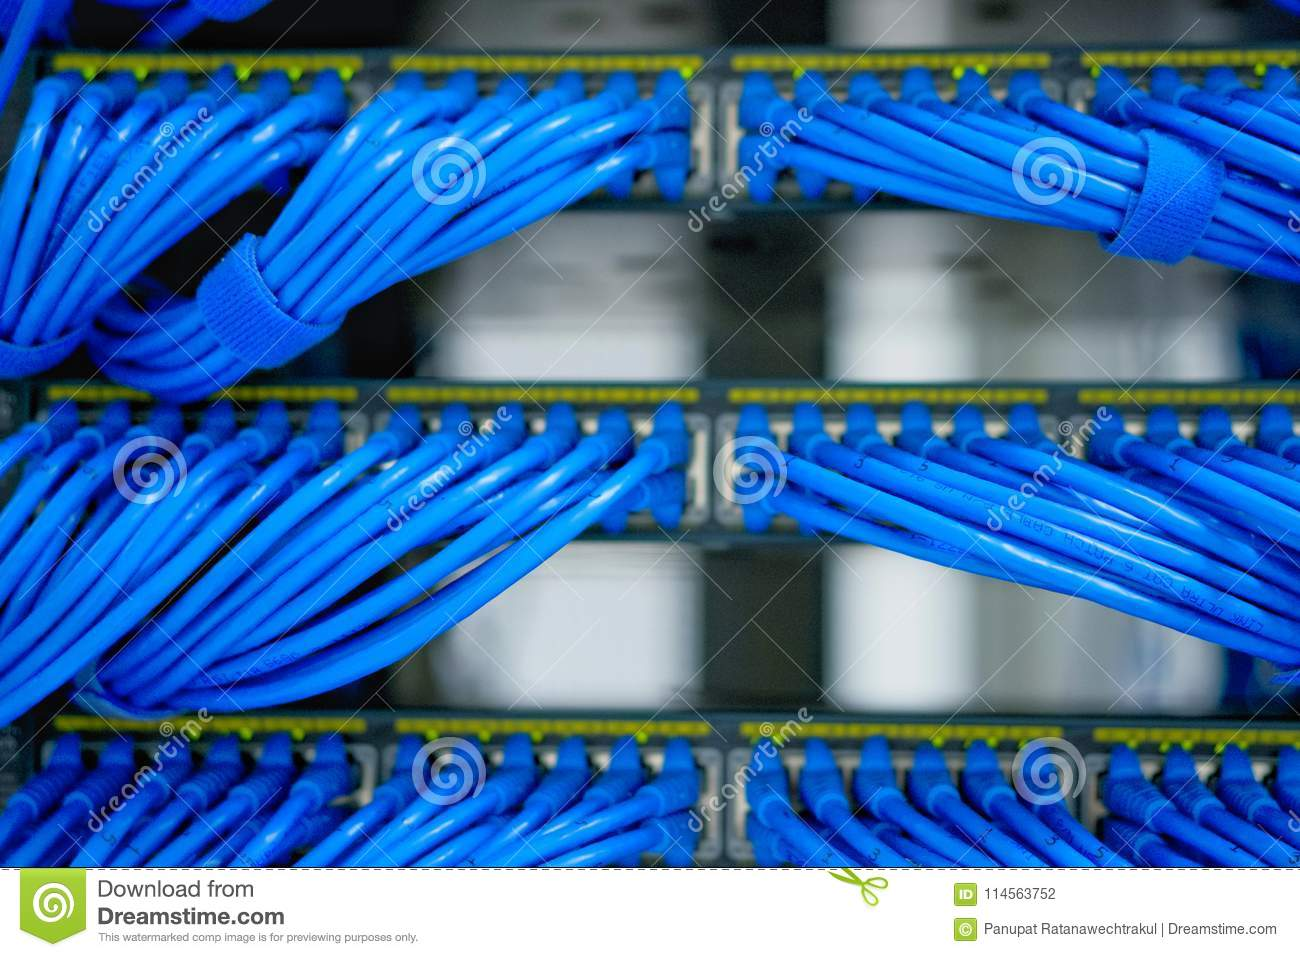 LAN Cable Wiring And Networking In The Data Center. Stock Photo ...